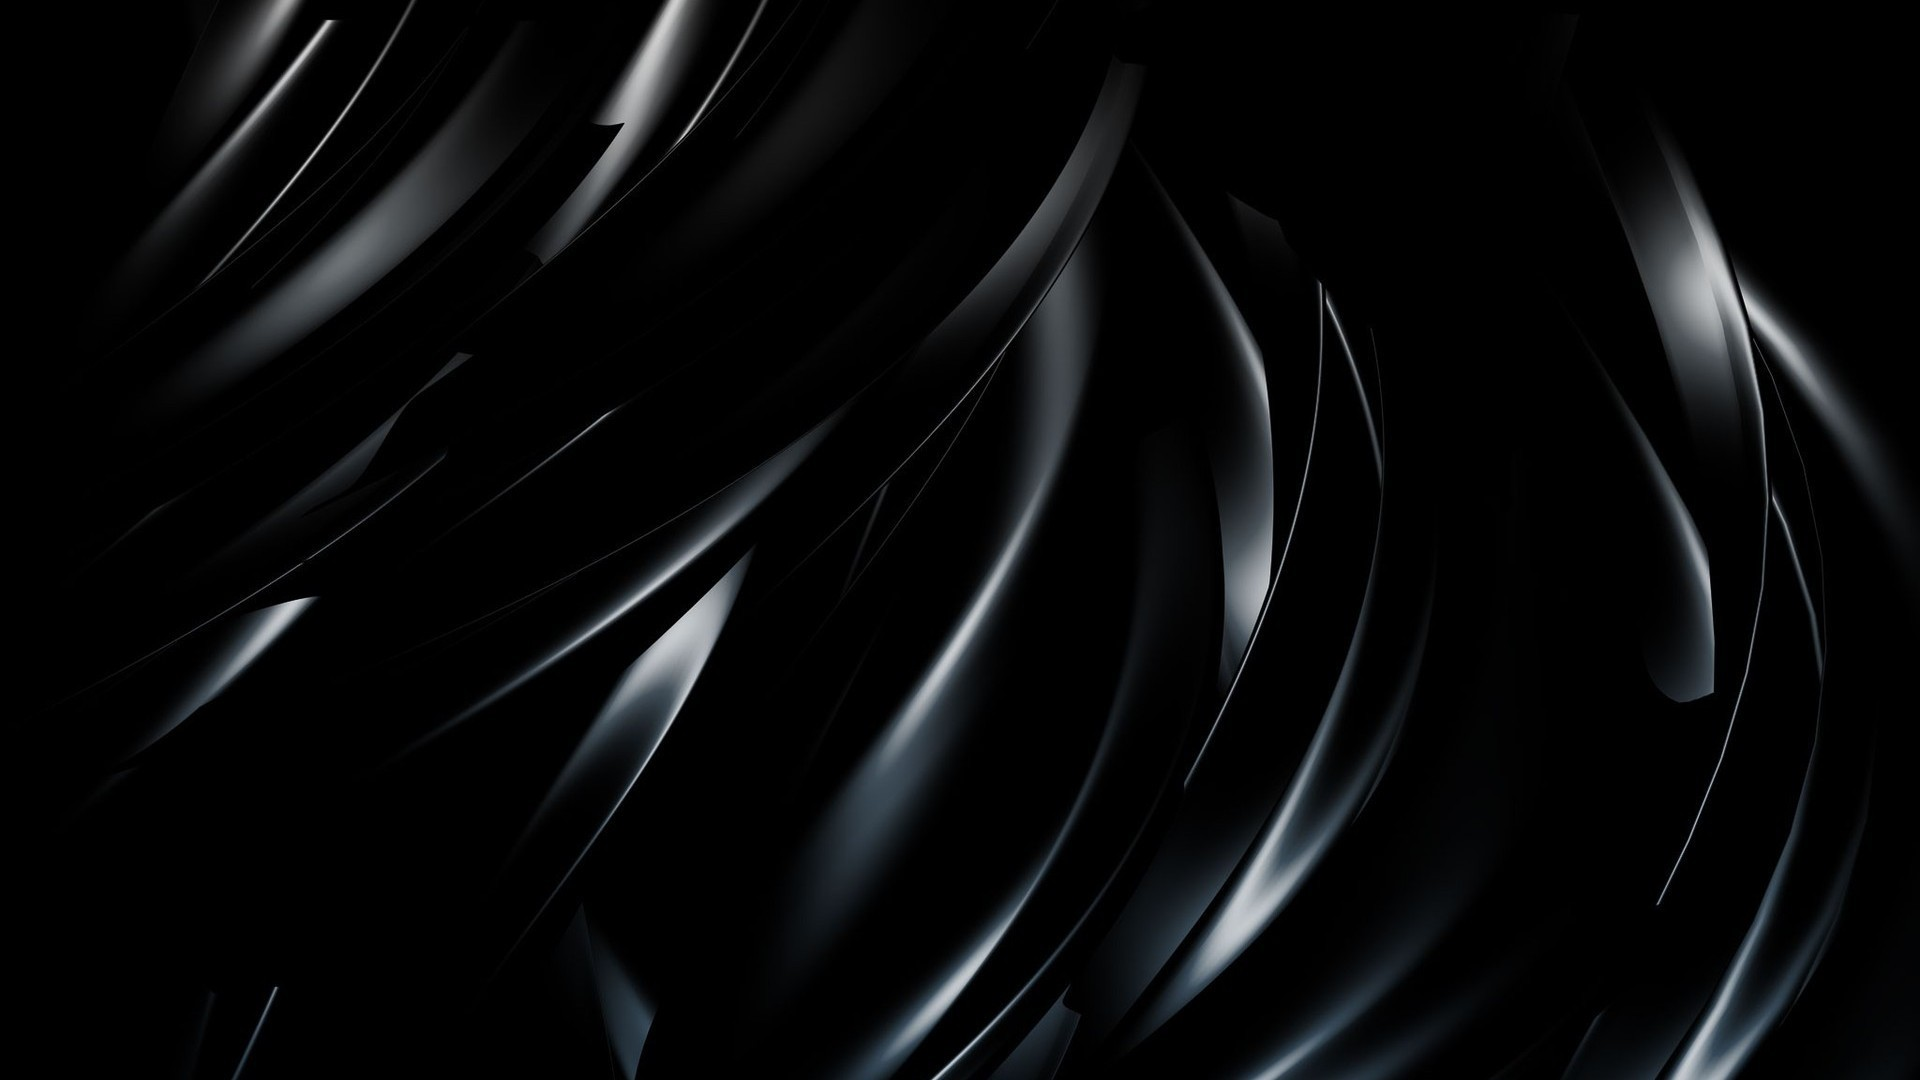 3D Black Abstract Wallpapers